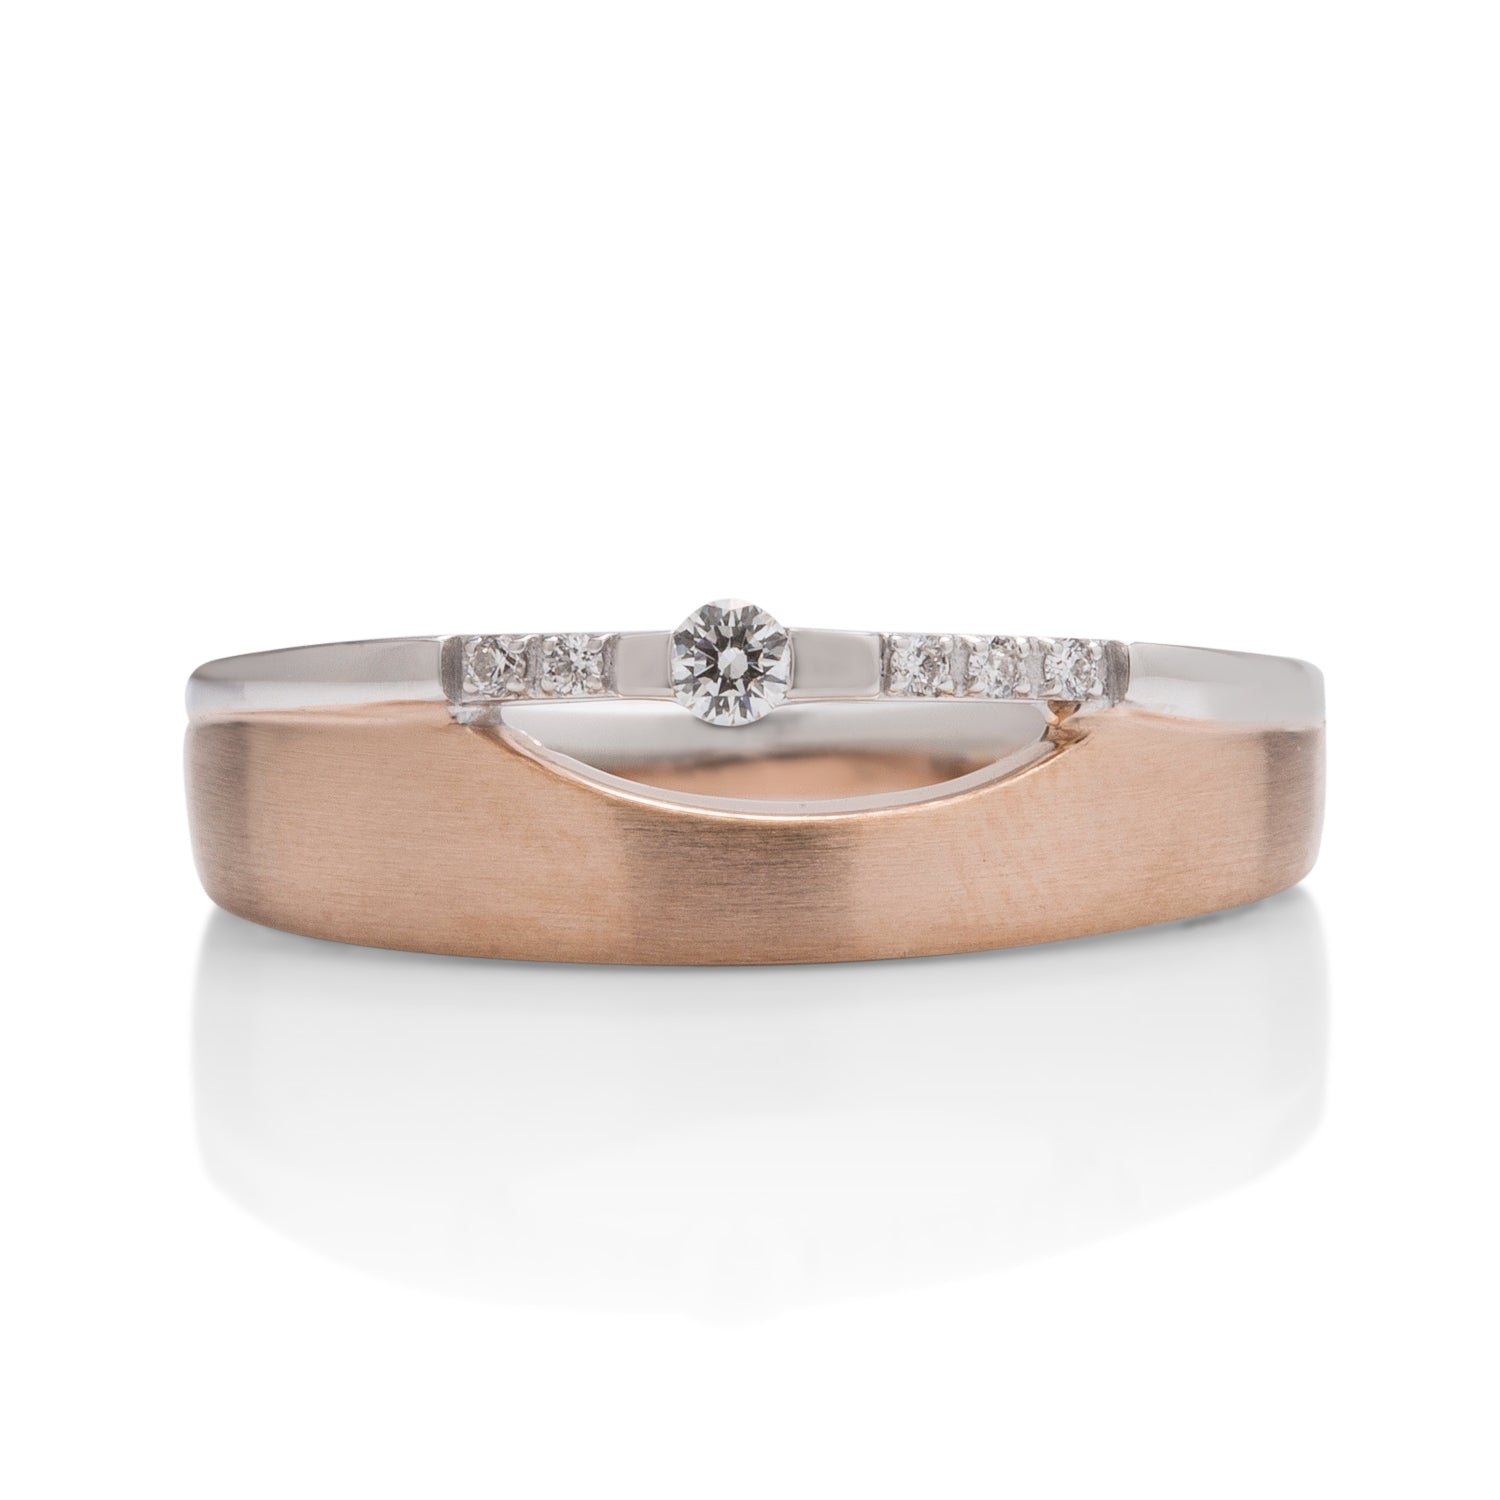 18k White and Rose Gold Diamond Ring - Charles Koll Jewellers